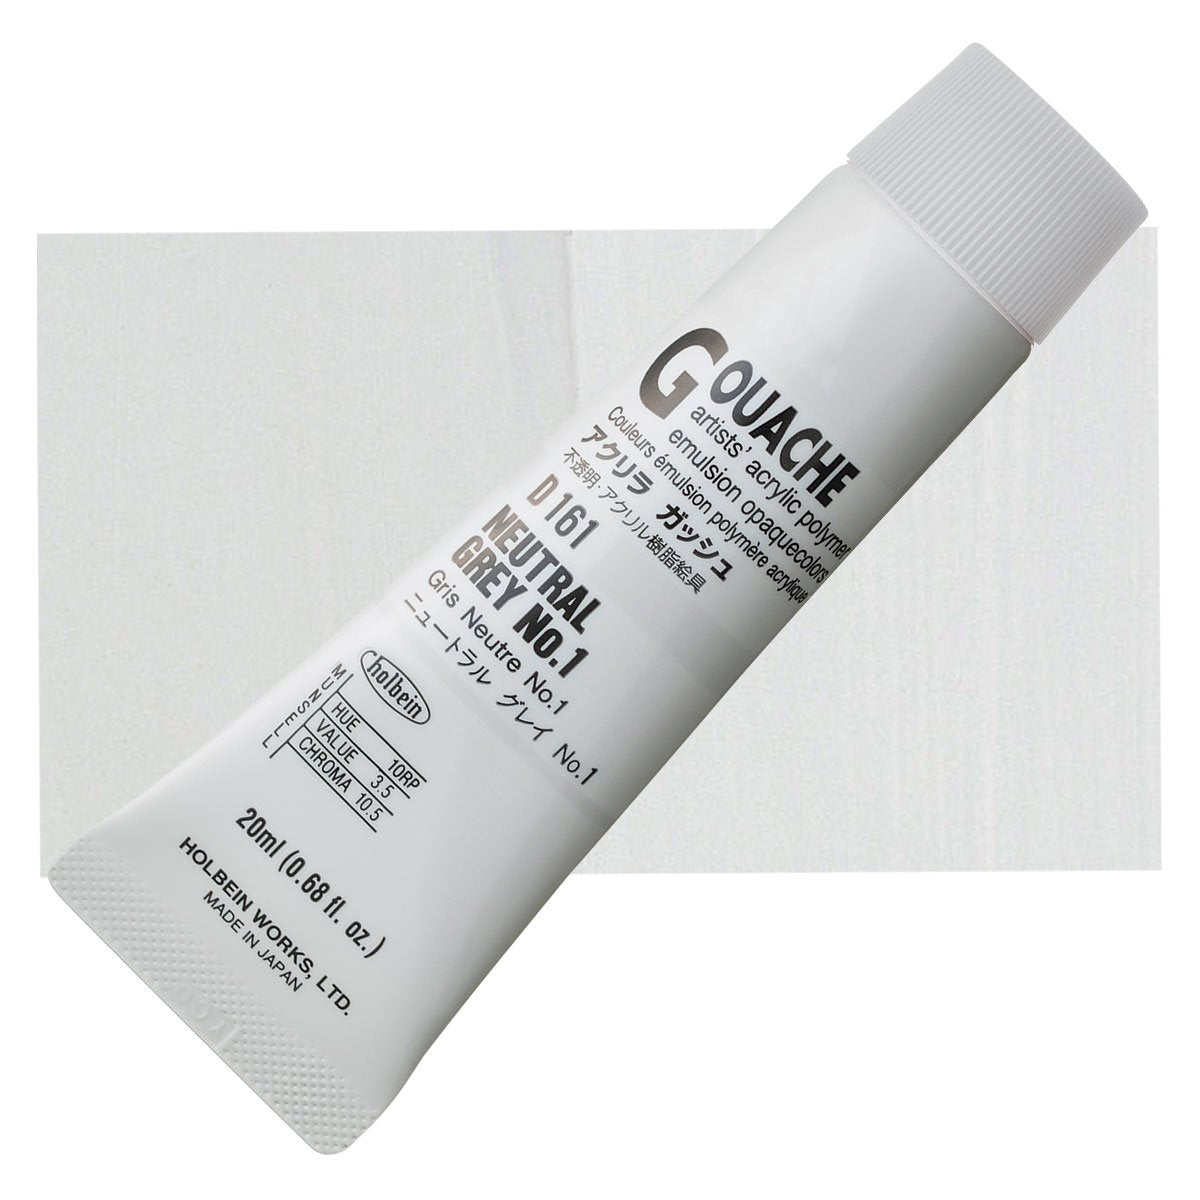 Holbein Acryla Gouache 20ml Tubes - Neutral Grey #1 by Holbein - K. A. Artist Shop